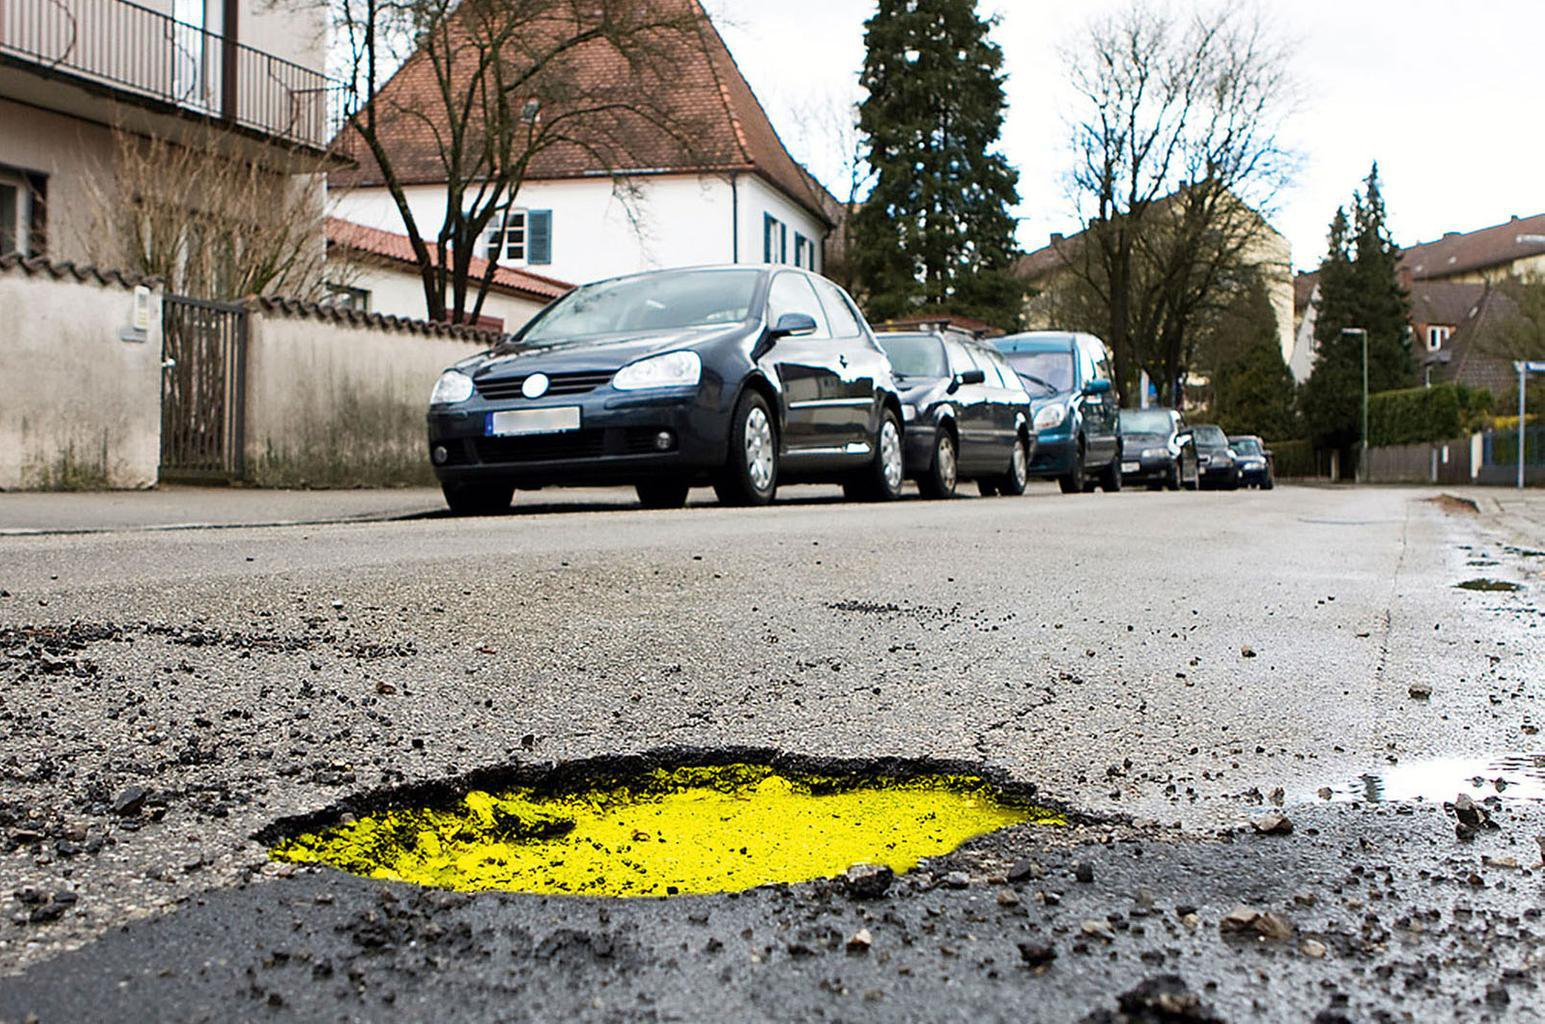 Potholes causing more car breakdowns